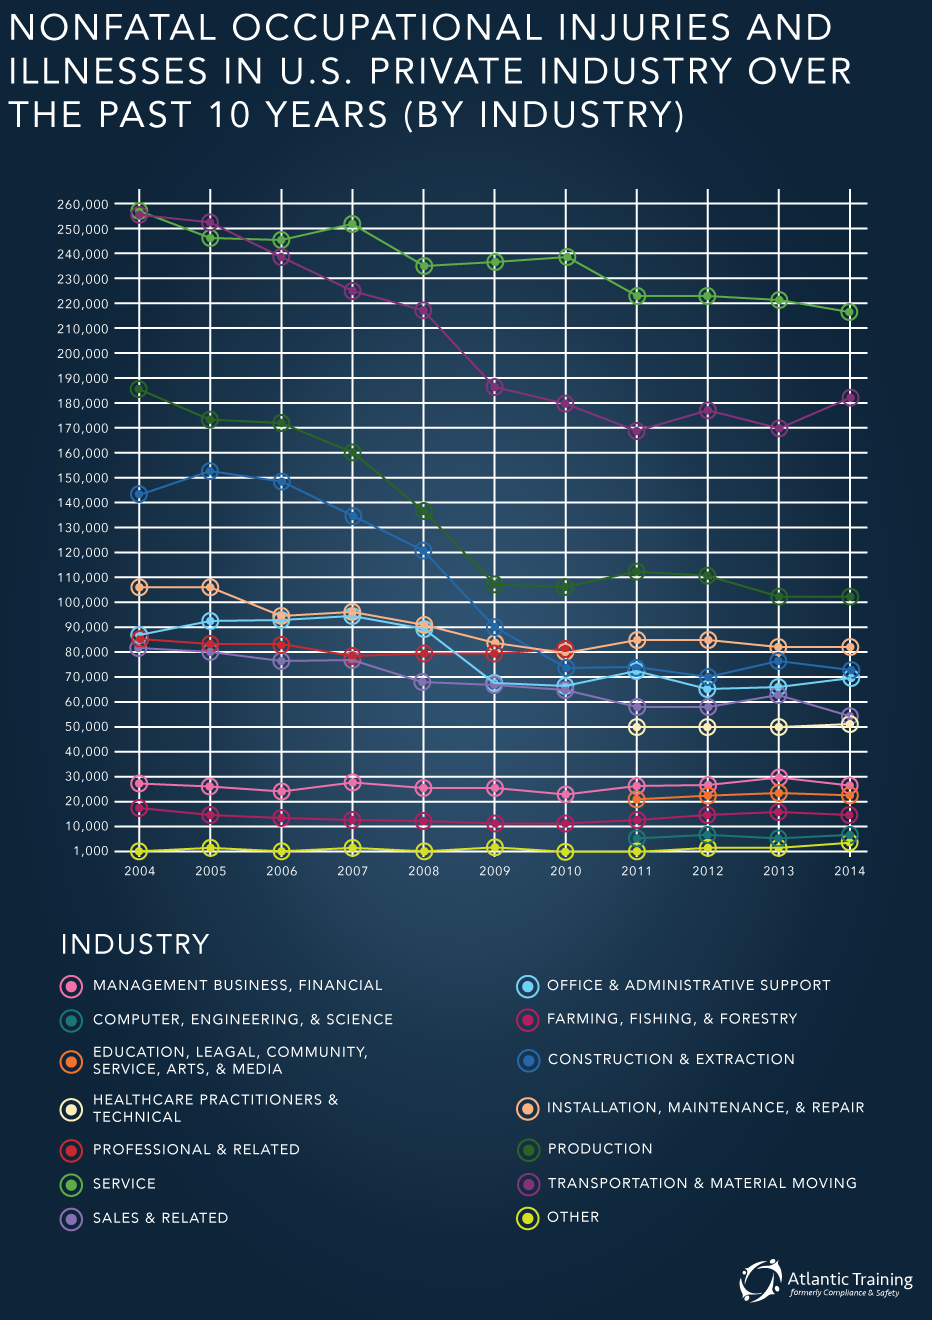 Workplace Injuries by Industry 2004-2014